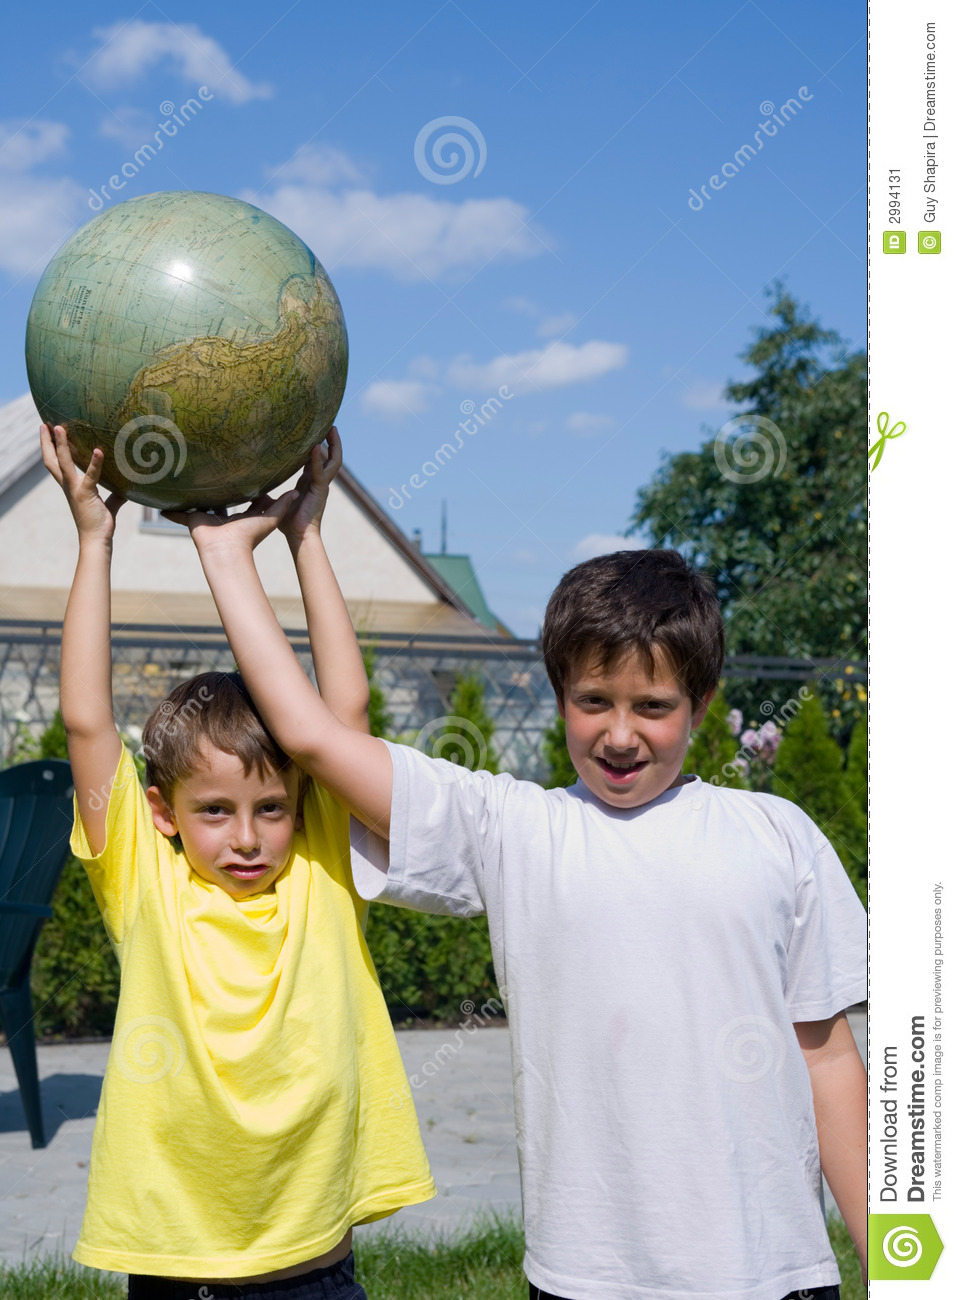 Brothers and globe